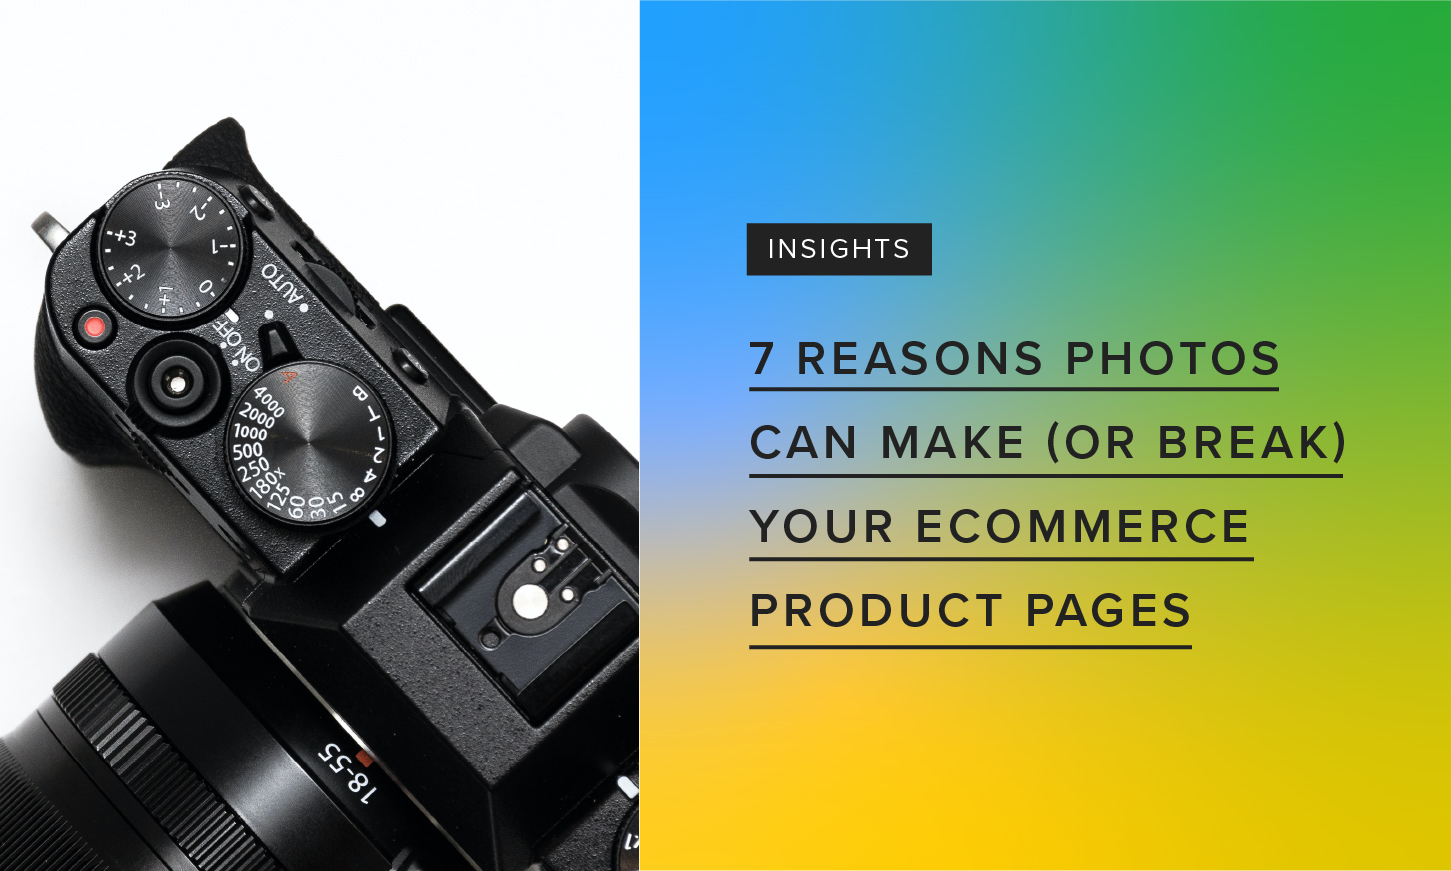 7 Reasons Photos Can Make (or Break) Ecommerce Product Pages